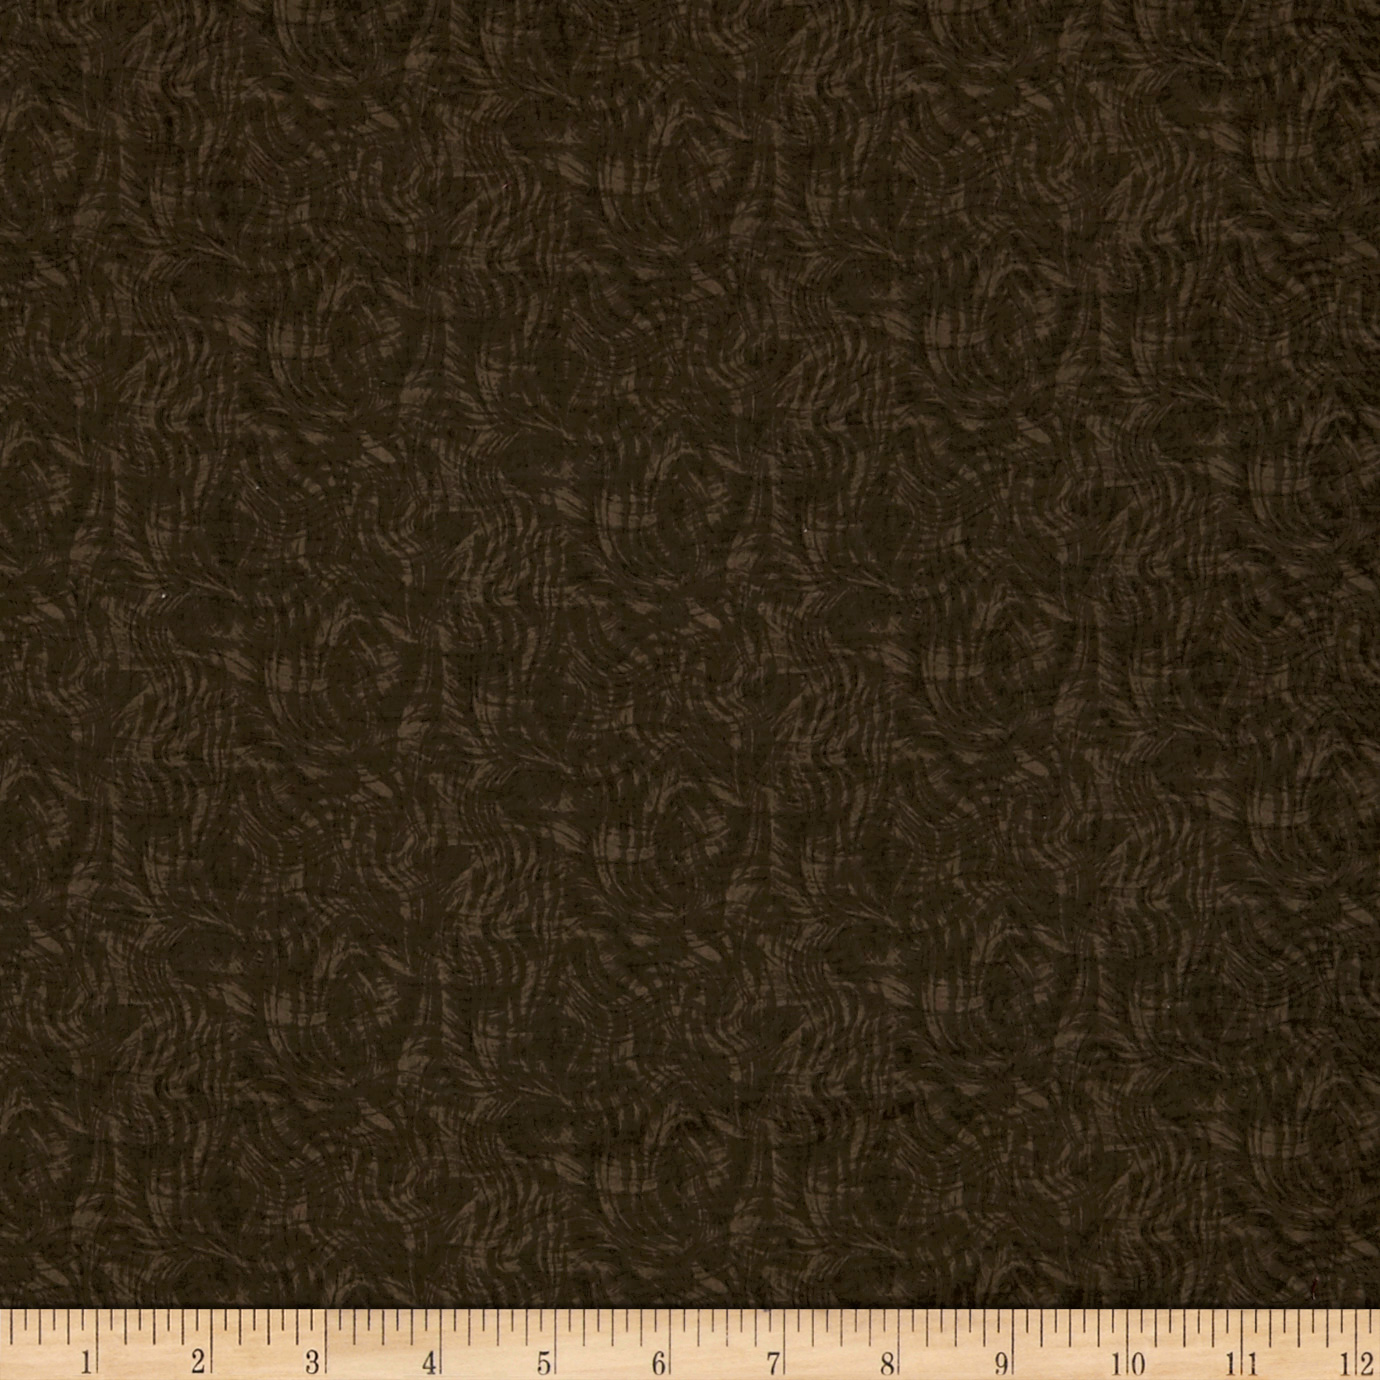 Impressions Moire Ii Dark Brown Fabric